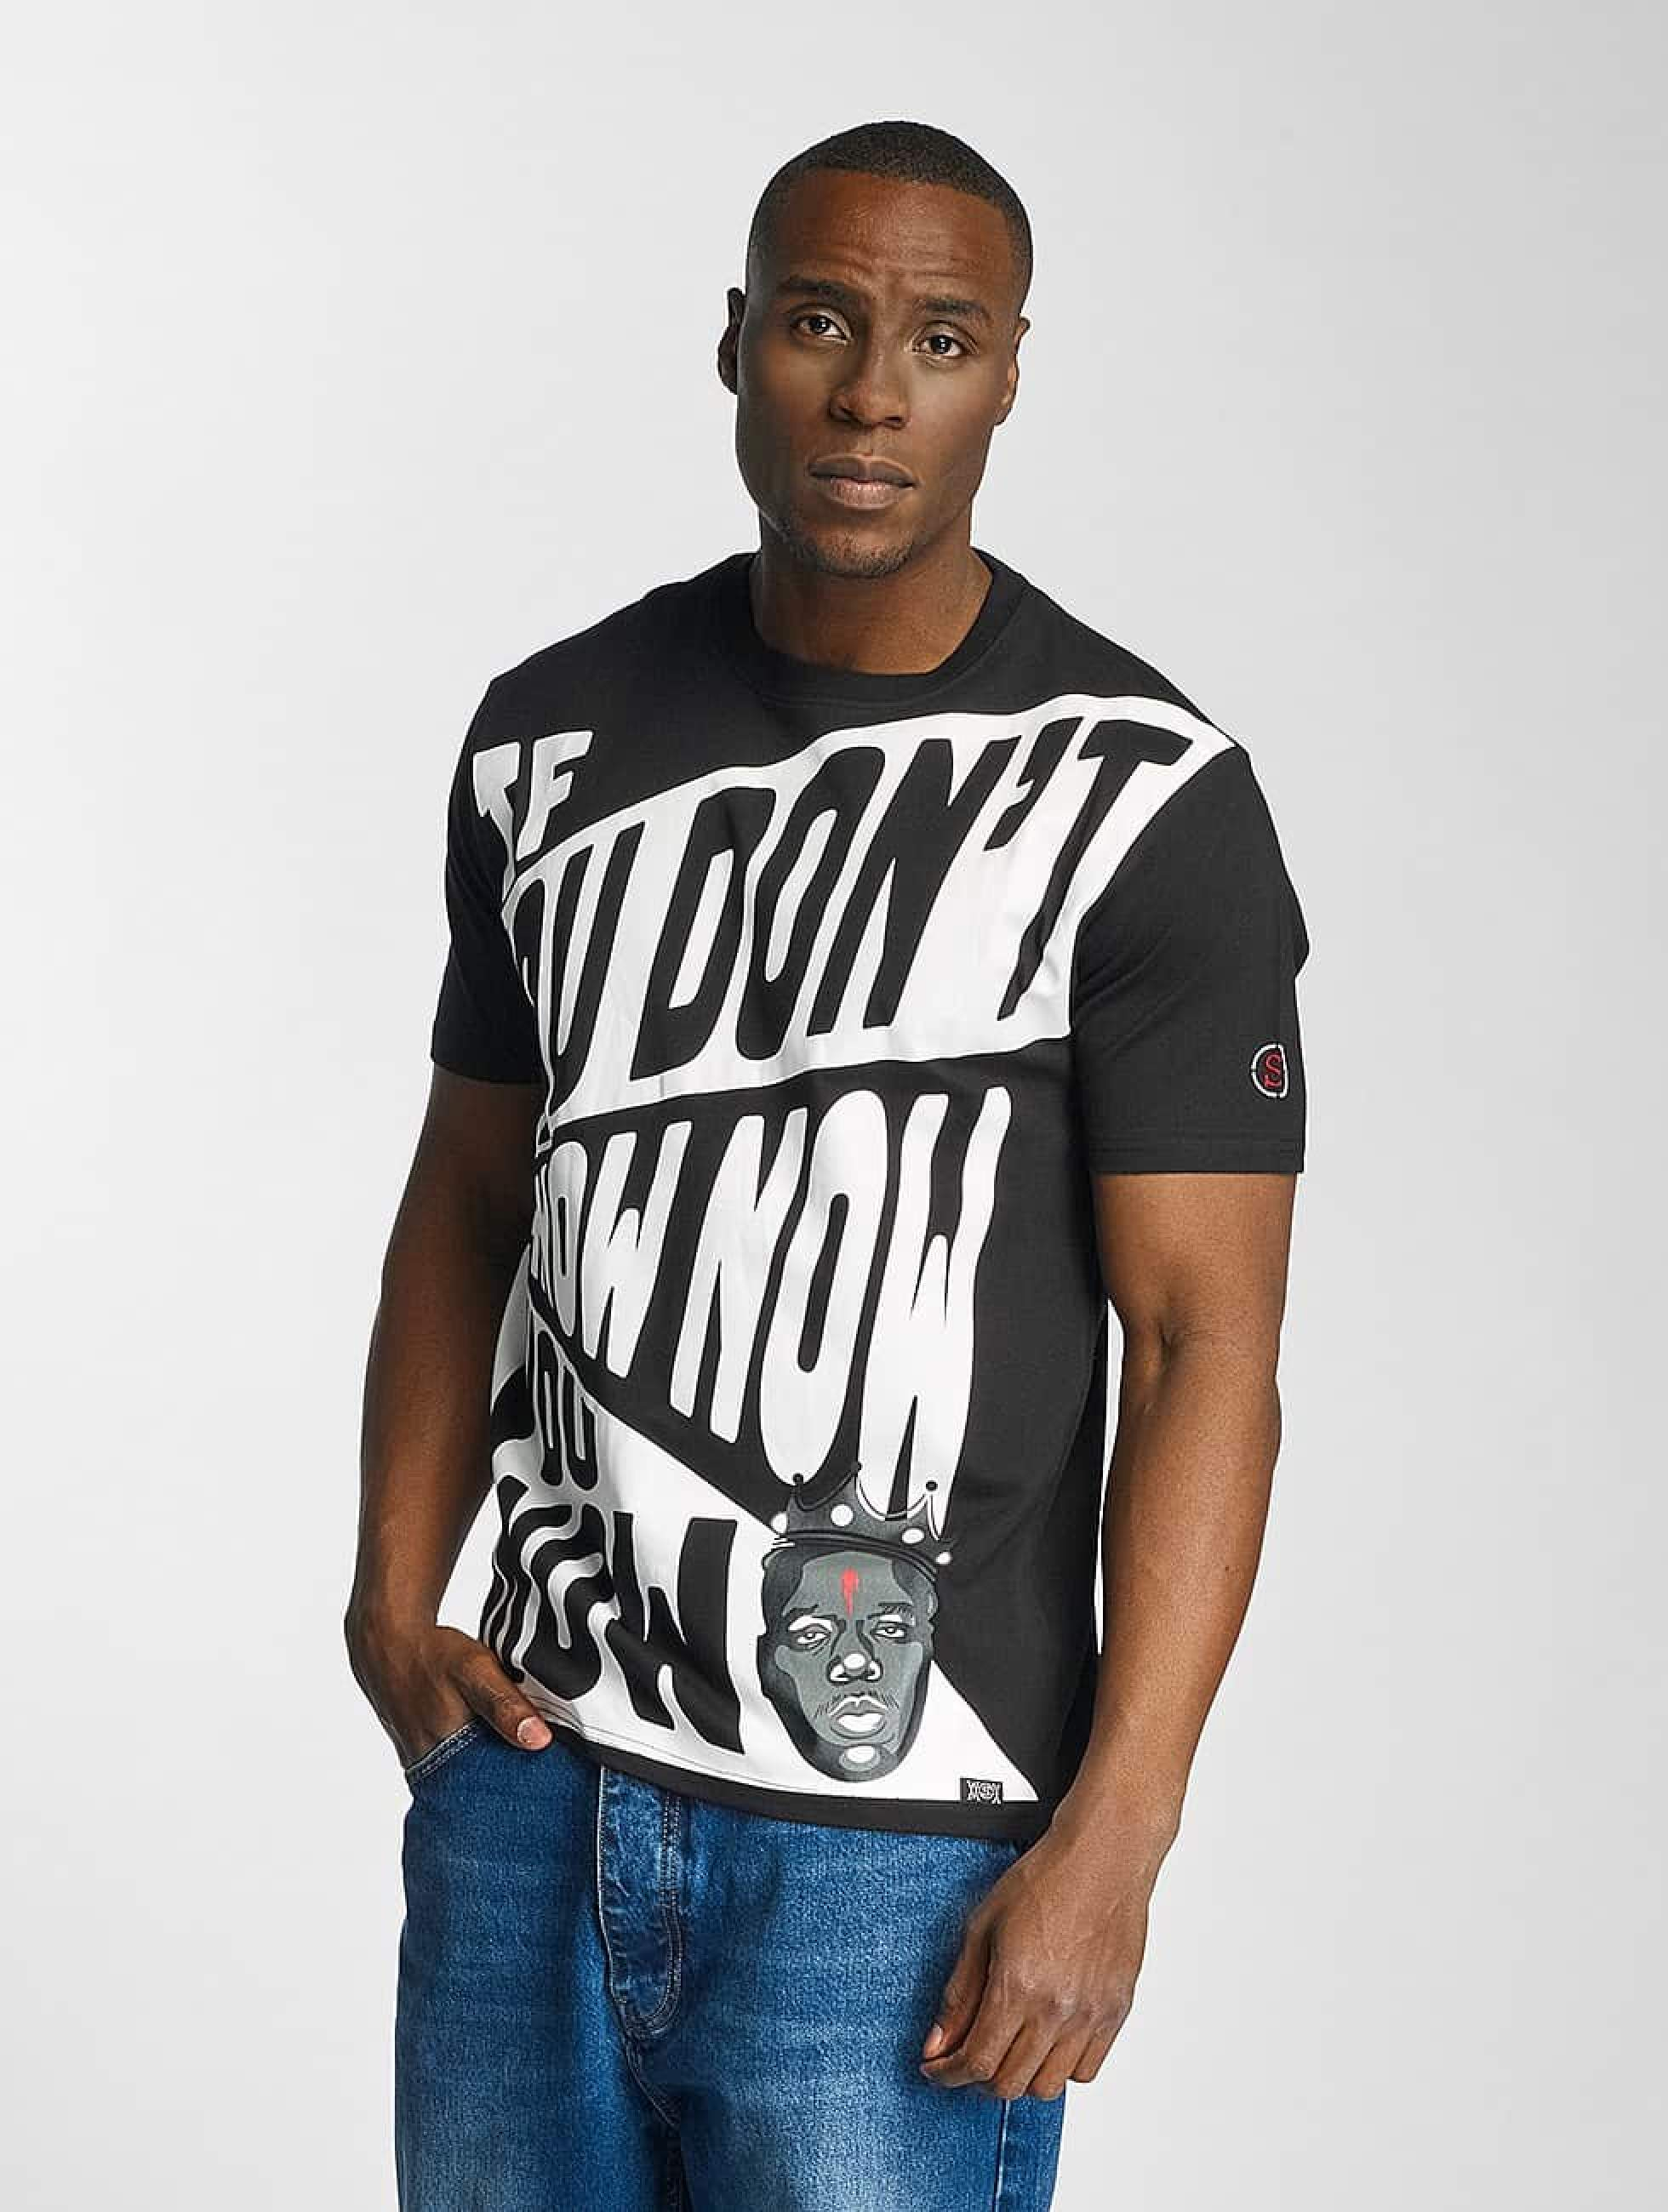 Who Shot Ya? / T-Shirt YouKnow in black XL